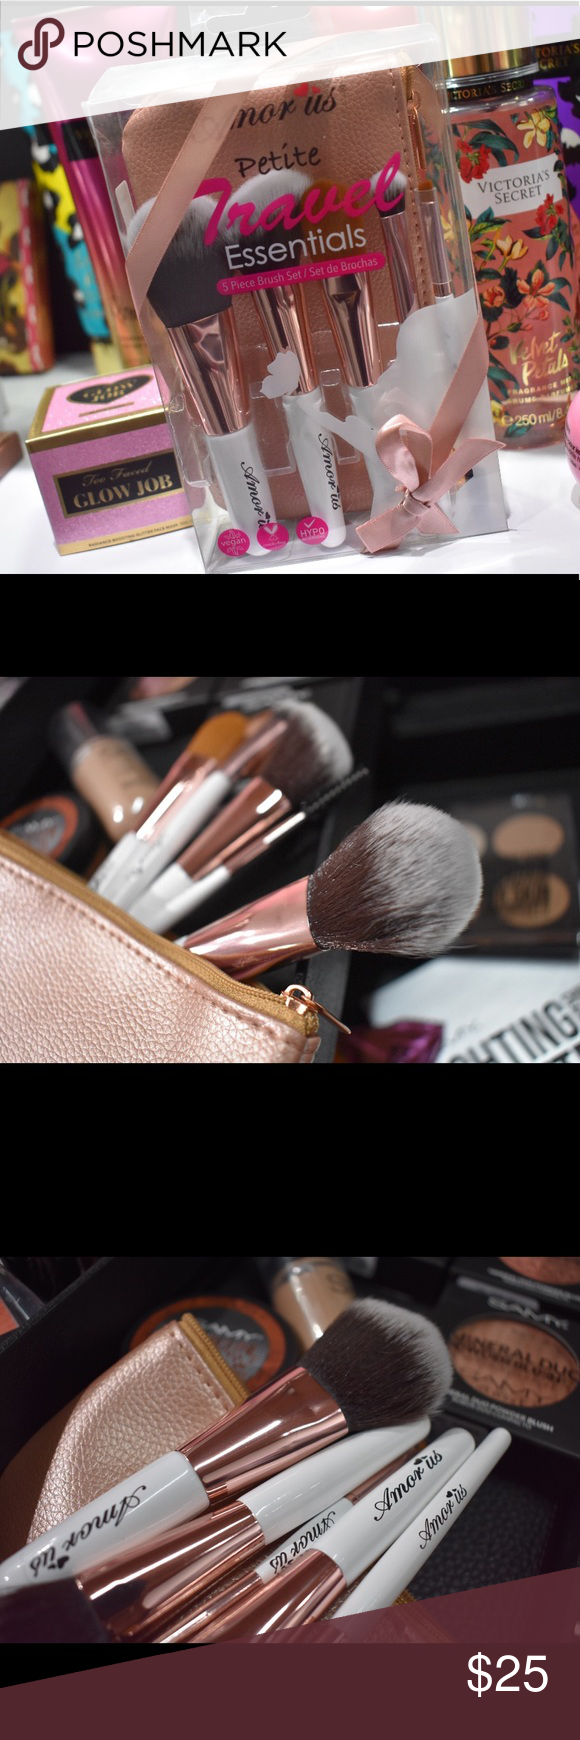 Vegan Travel Essential Brush Set This 5-Piece Set Petite Travel Essentials Makeup Brush Set will give flawless makeup while on the go. It features soft synthetic, cruelty free and vegan brushes accompanied by an adorable and snug rose gold brush pouch perfect for travel. amor us Makeup Brushes & Tools